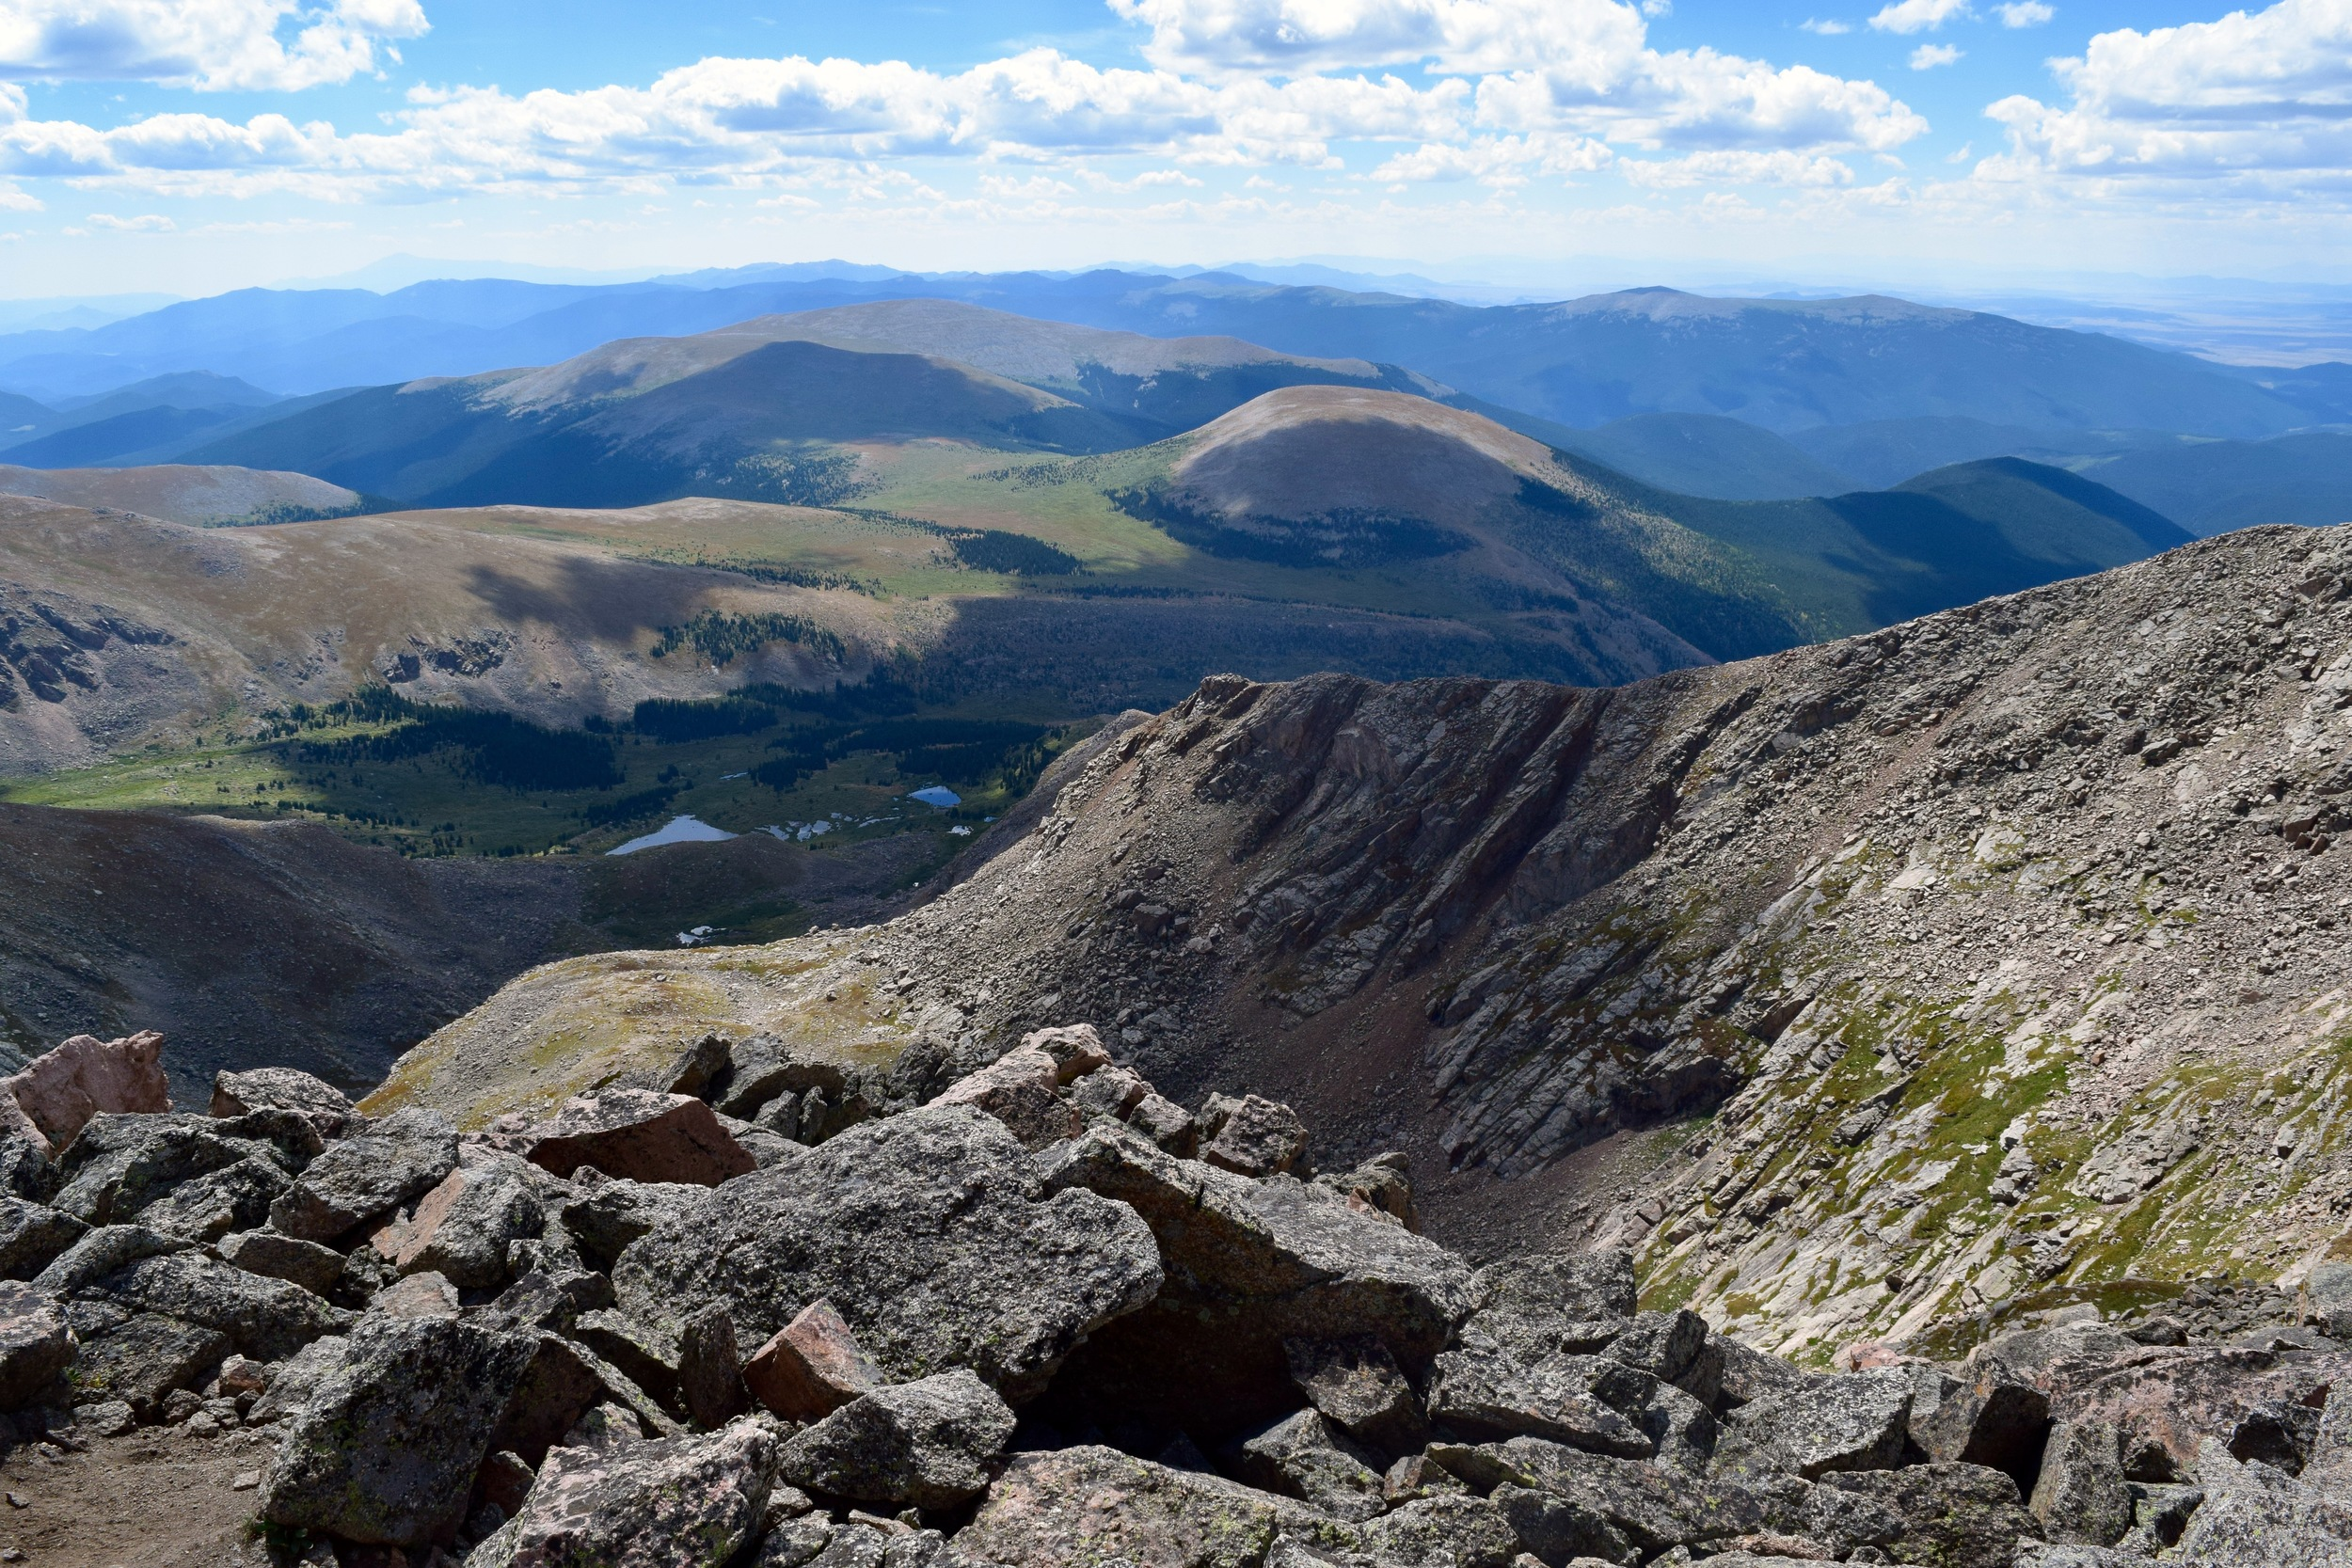 View down the East side of Mount Bierstadt